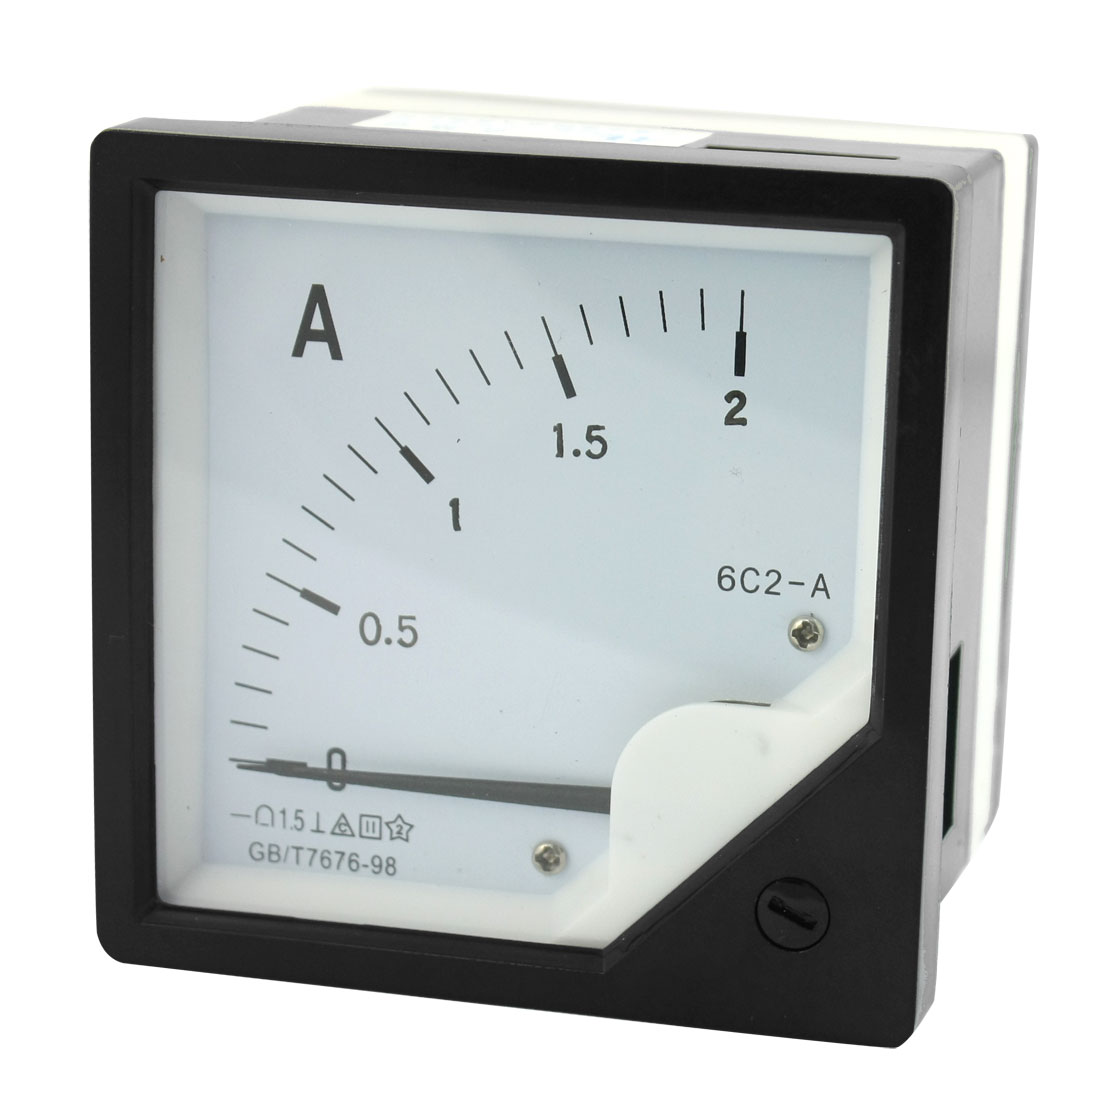 DC 0-2A Measuring Range Class 1.5 Current Testing Rectangle Plastic Panel Analog Meter Amperemeter 6C2